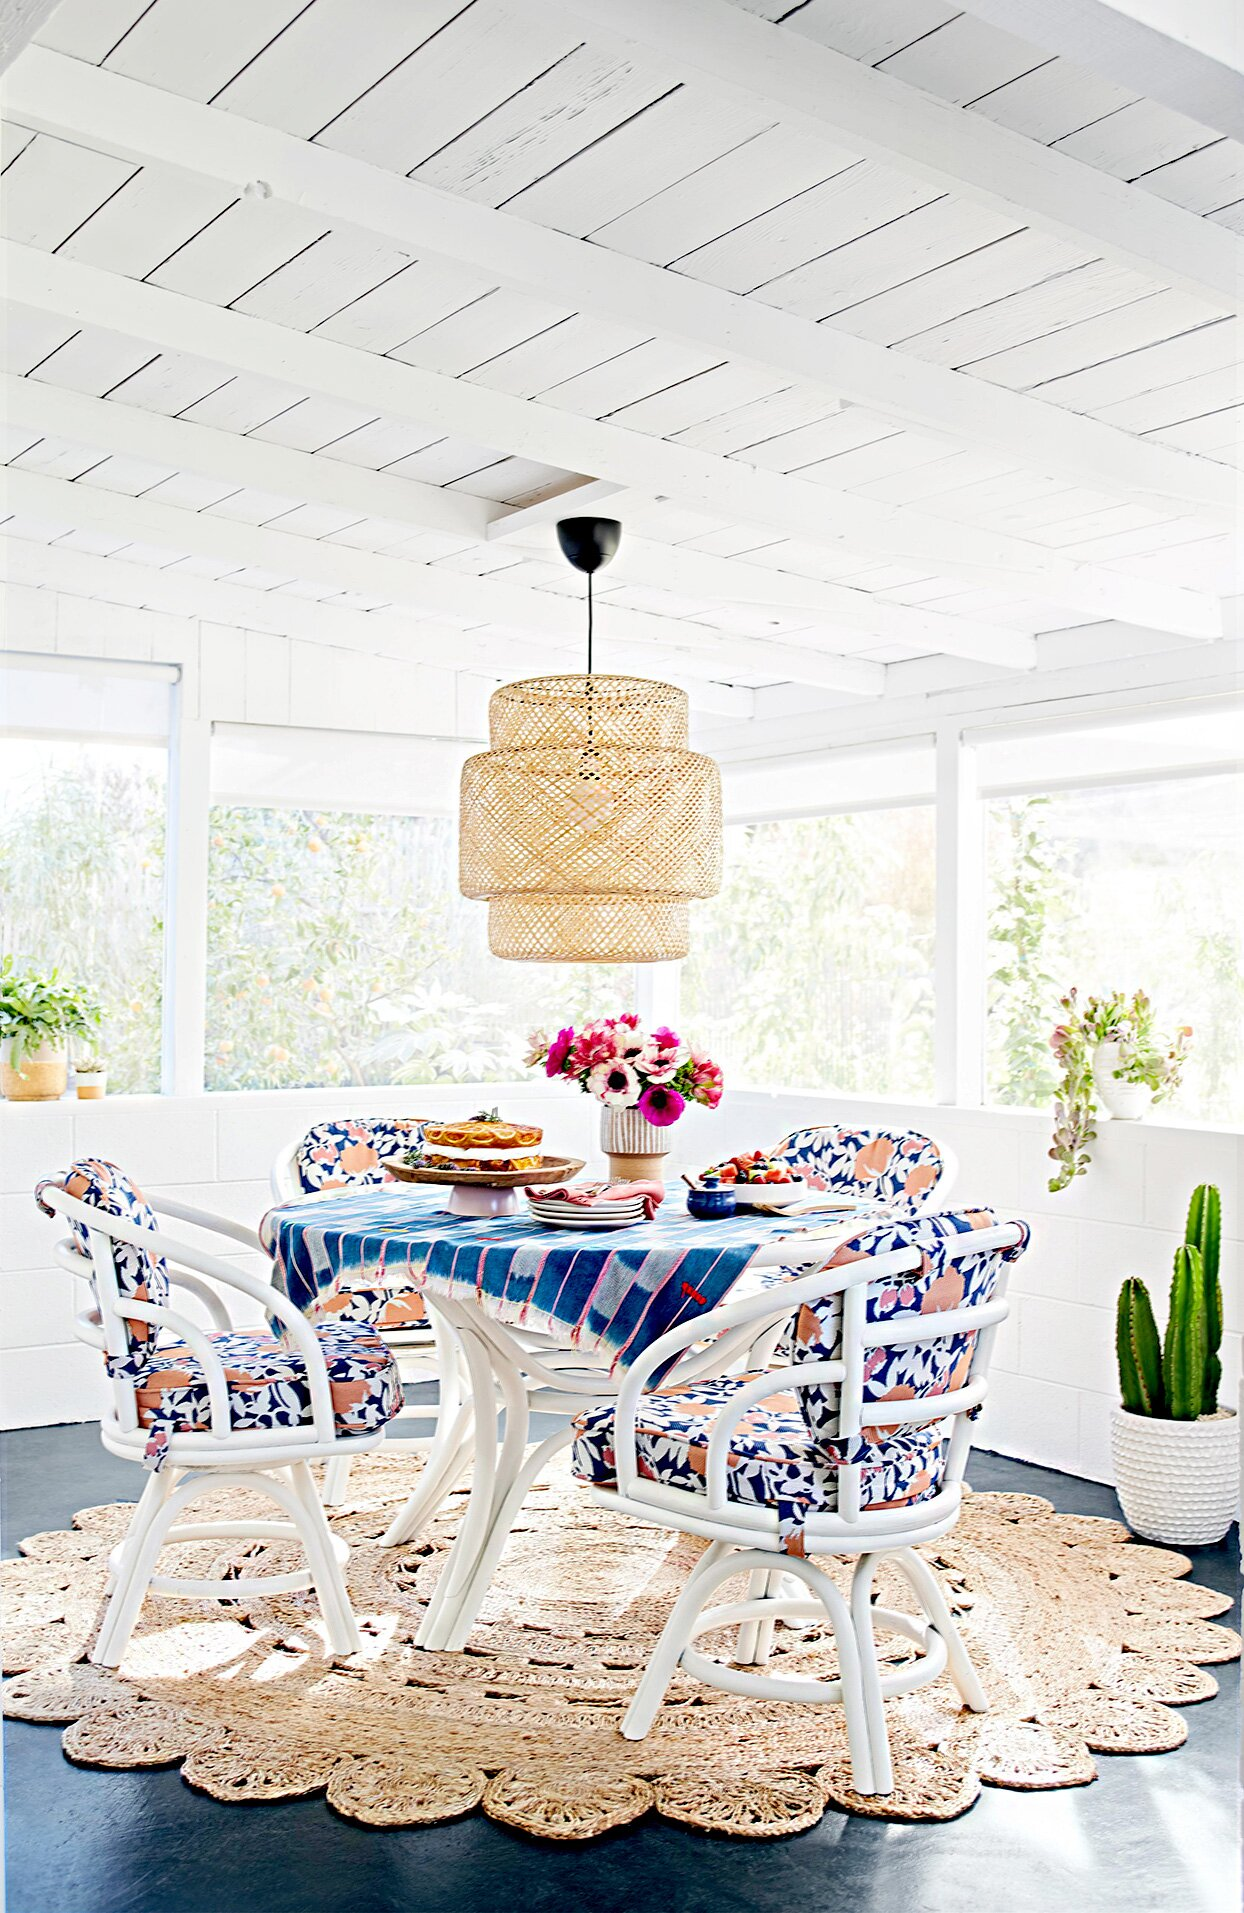 Porch with floral seating and doily rug